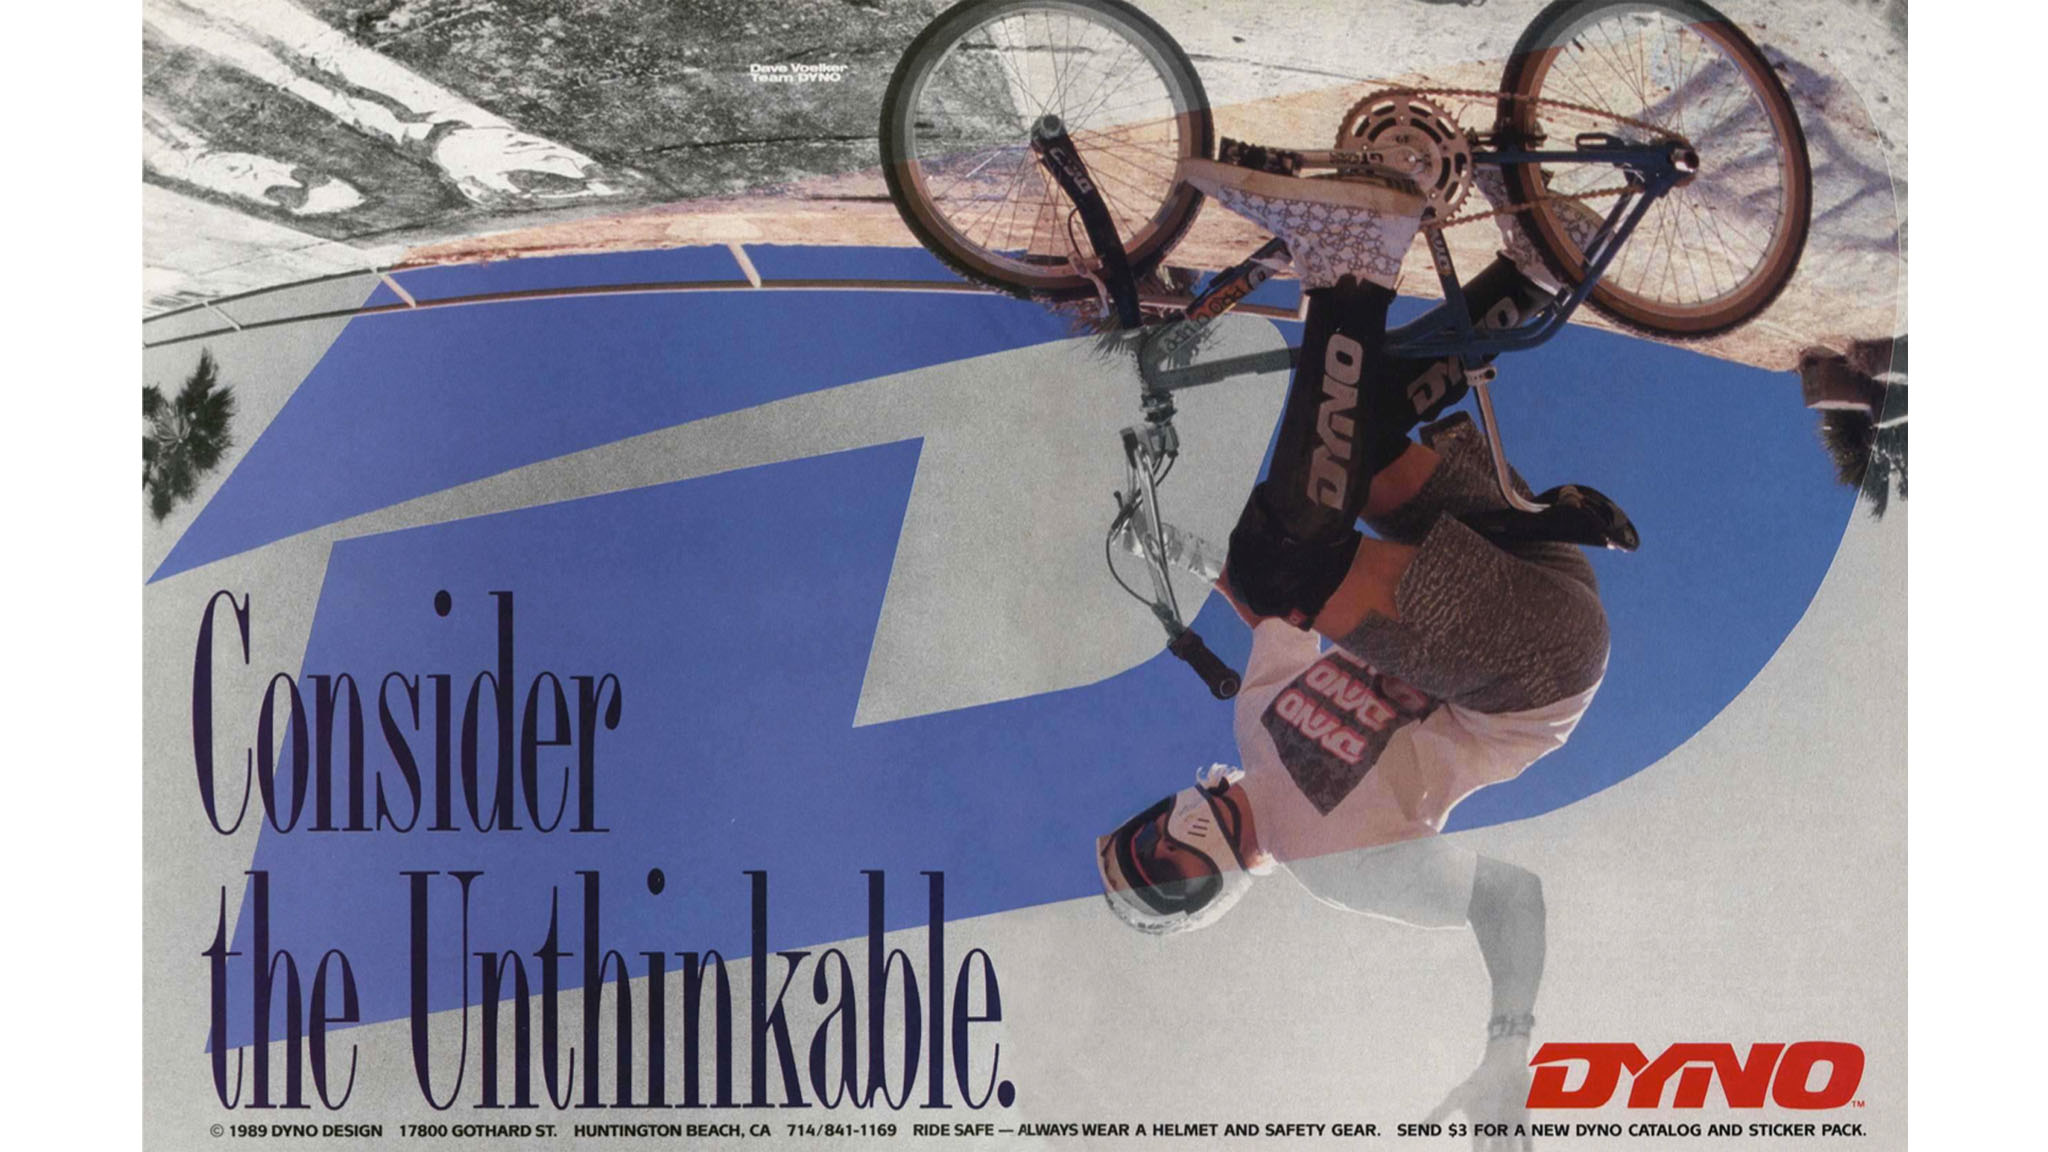 Dave Voelker as seen in a GT/Dyno ad in 1990.